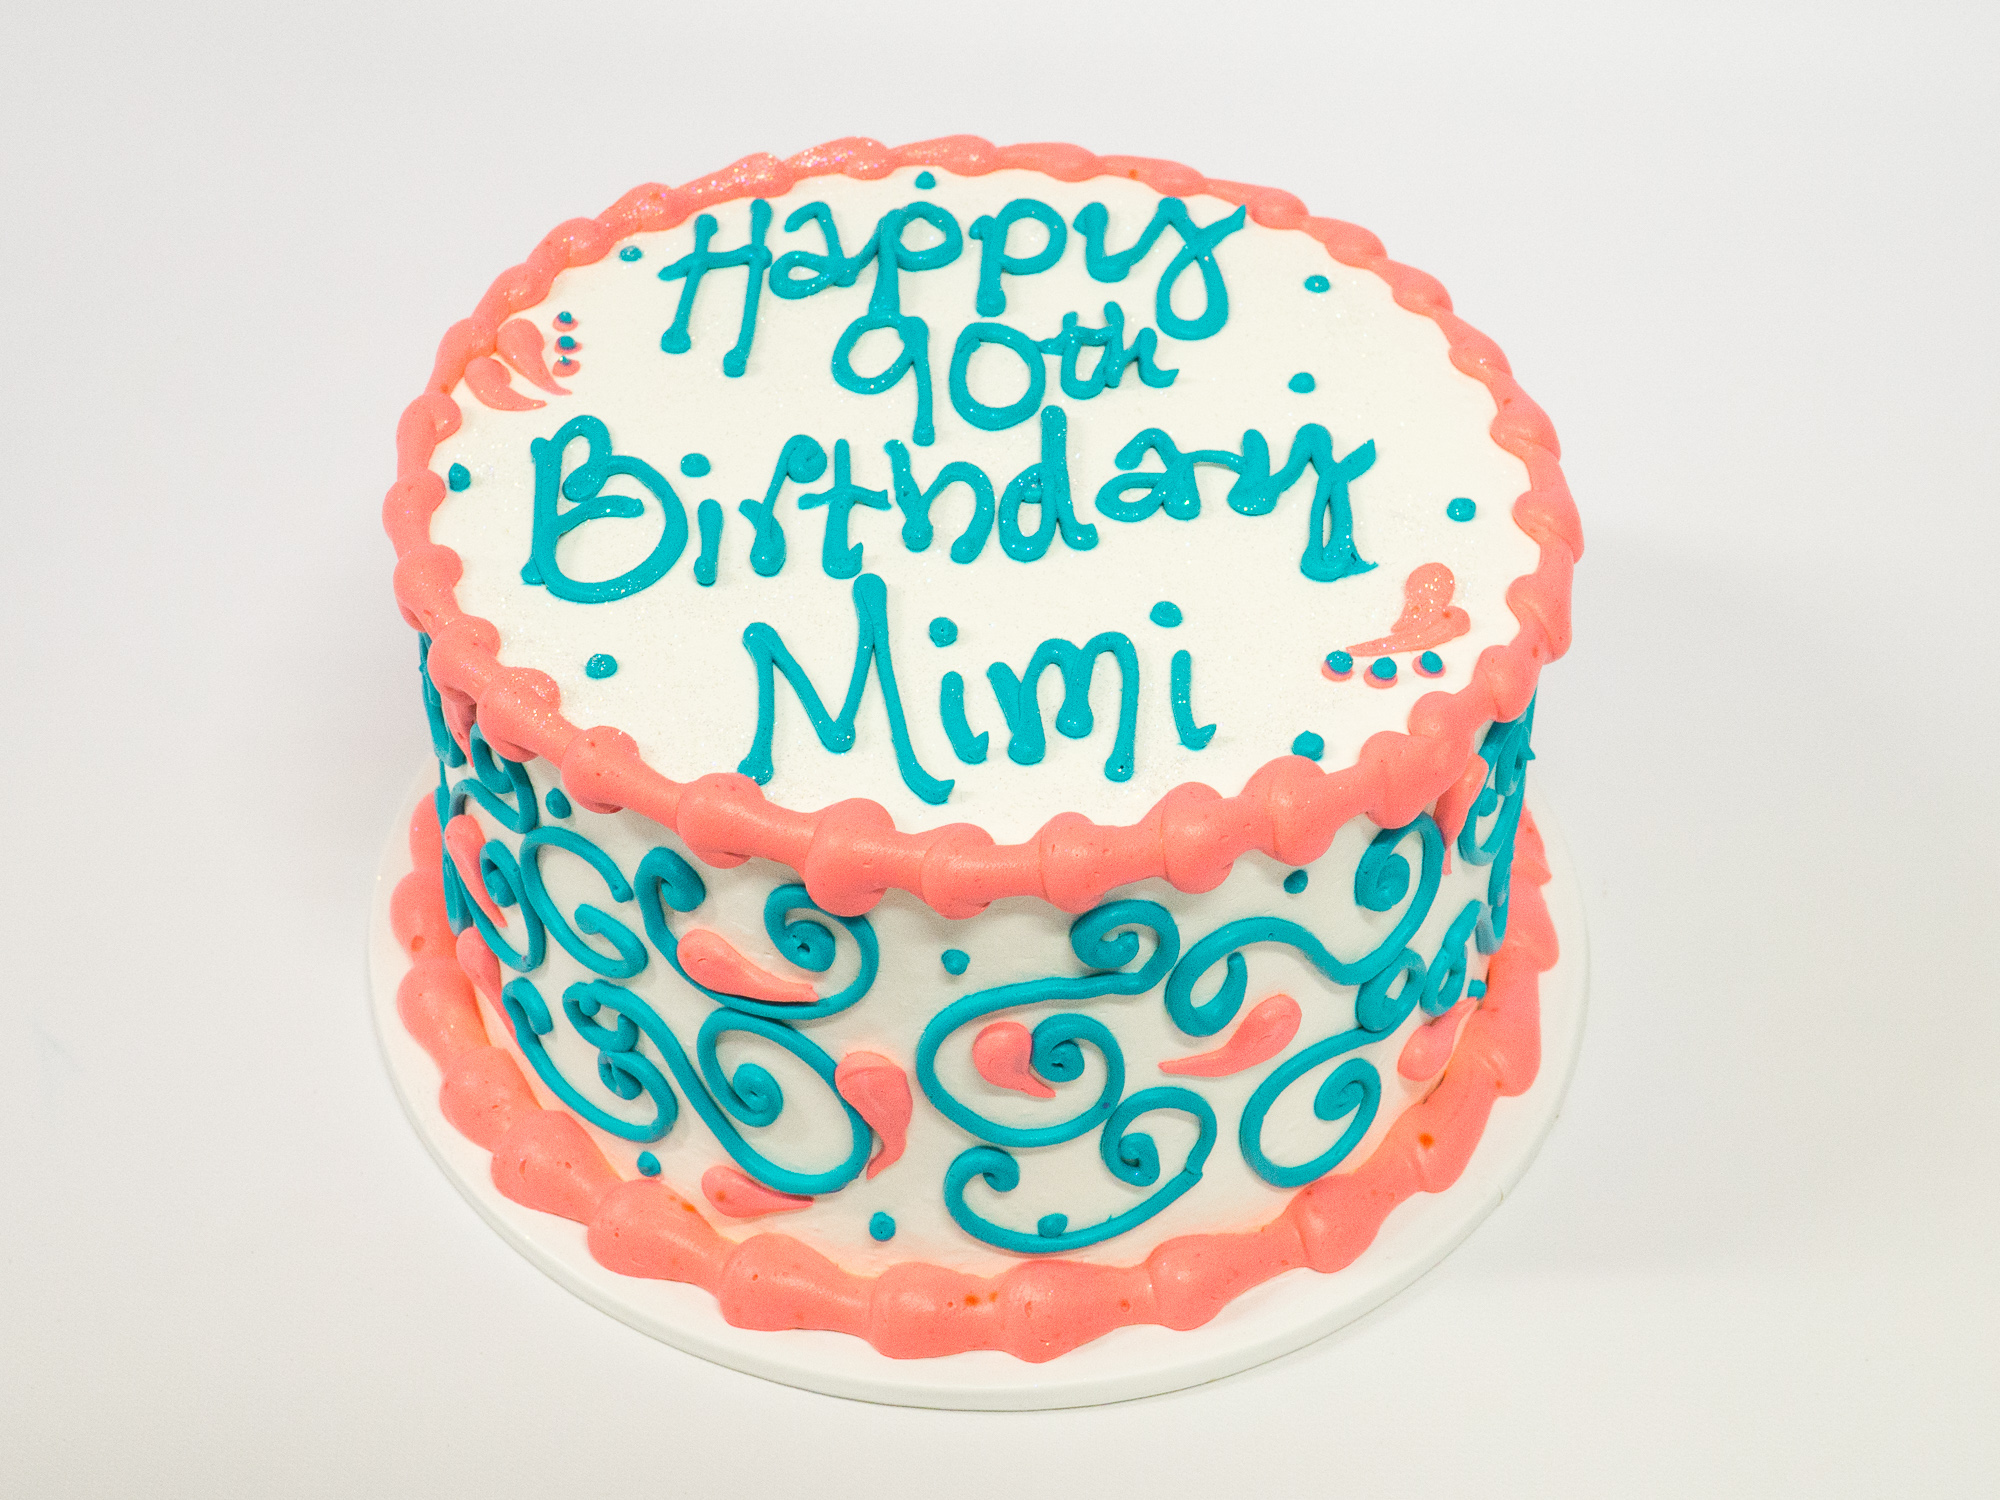 Pleasing Photo Of A Coral And Teal 90Th Birthday Cake Pattys Cakes And Funny Birthday Cards Online Elaedamsfinfo